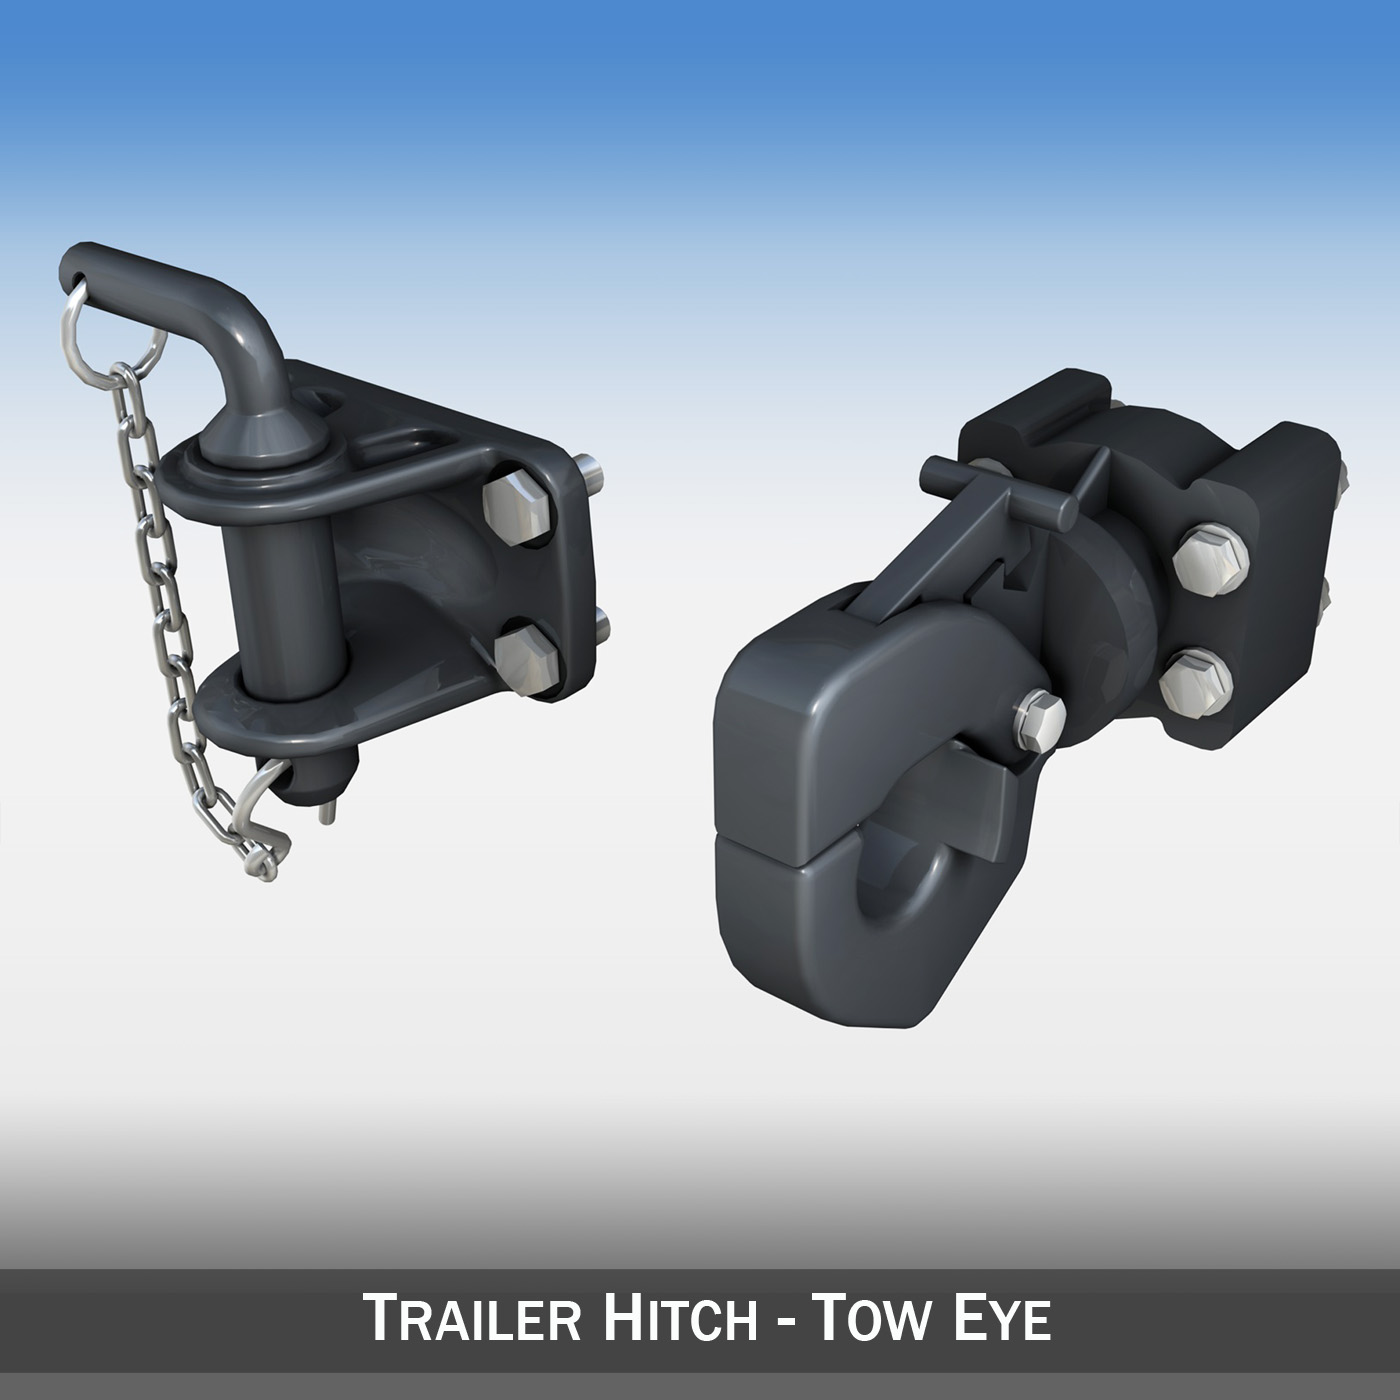 trailer hitch - tow eye 3d model 3ds fbx c4d lwo obj 187223